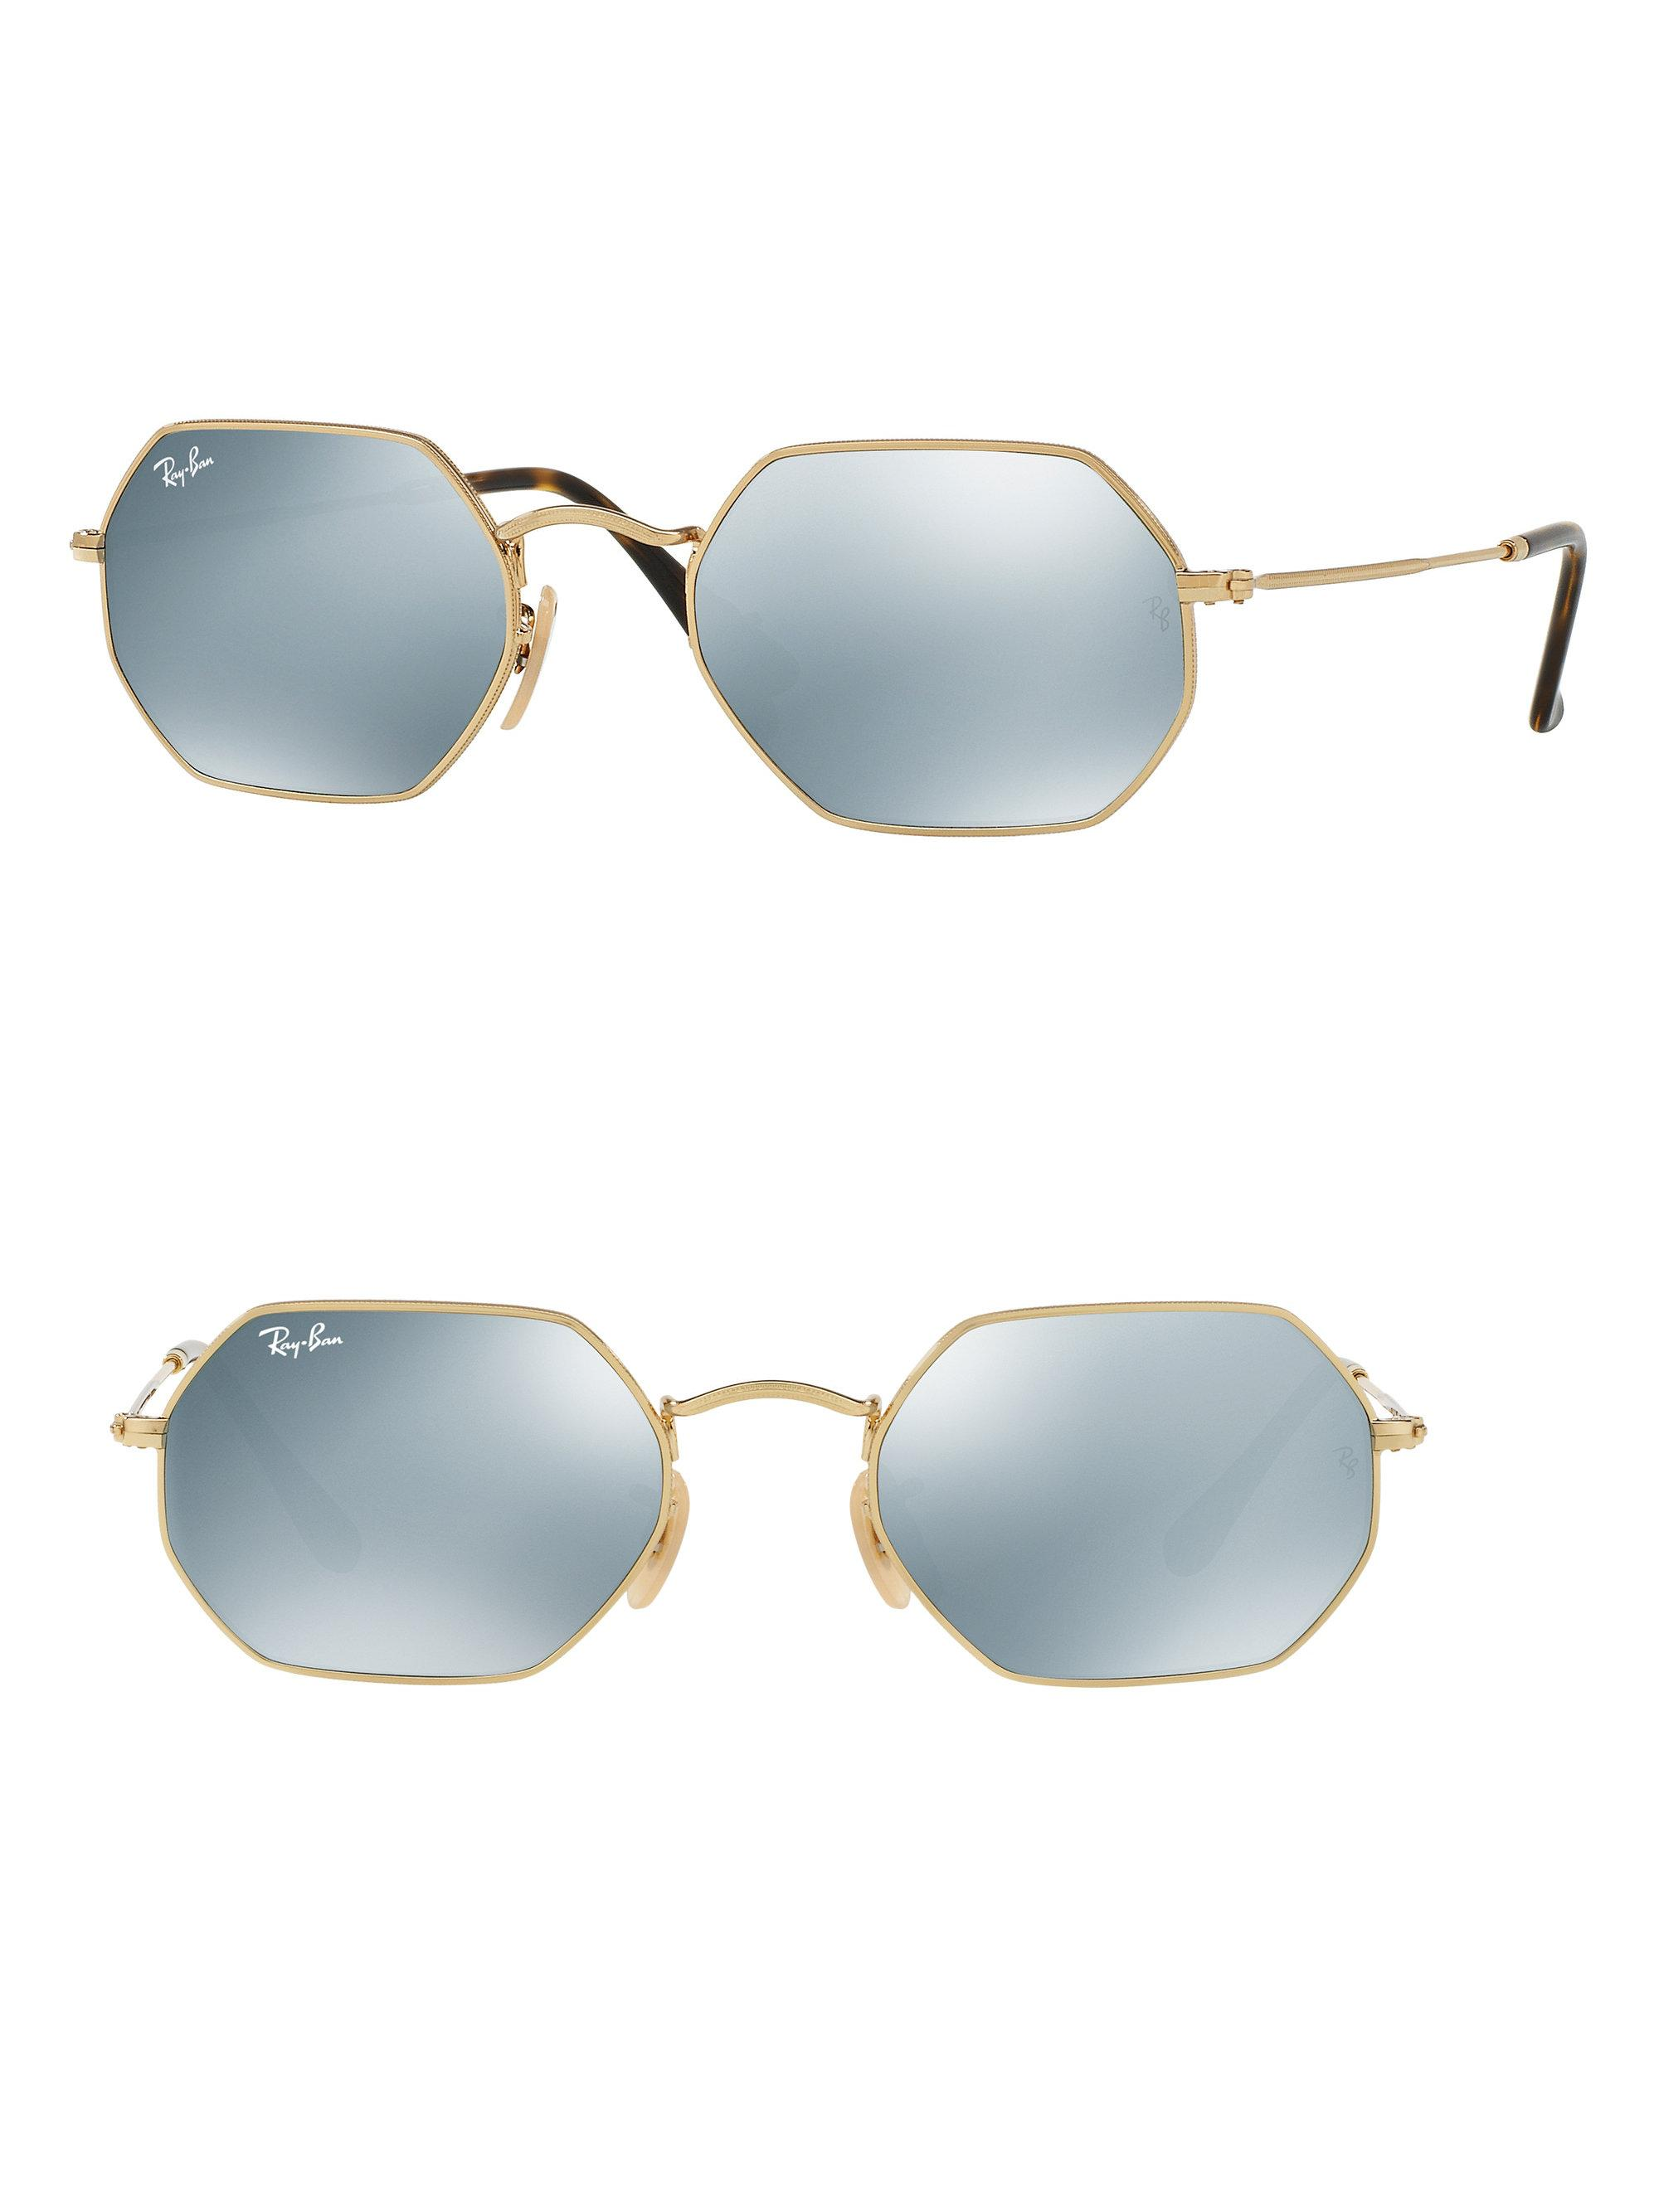 057d2f51cfd Ray-Ban Mirrored Hexagonal Metal Sunglasses in Blue for Men - Lyst